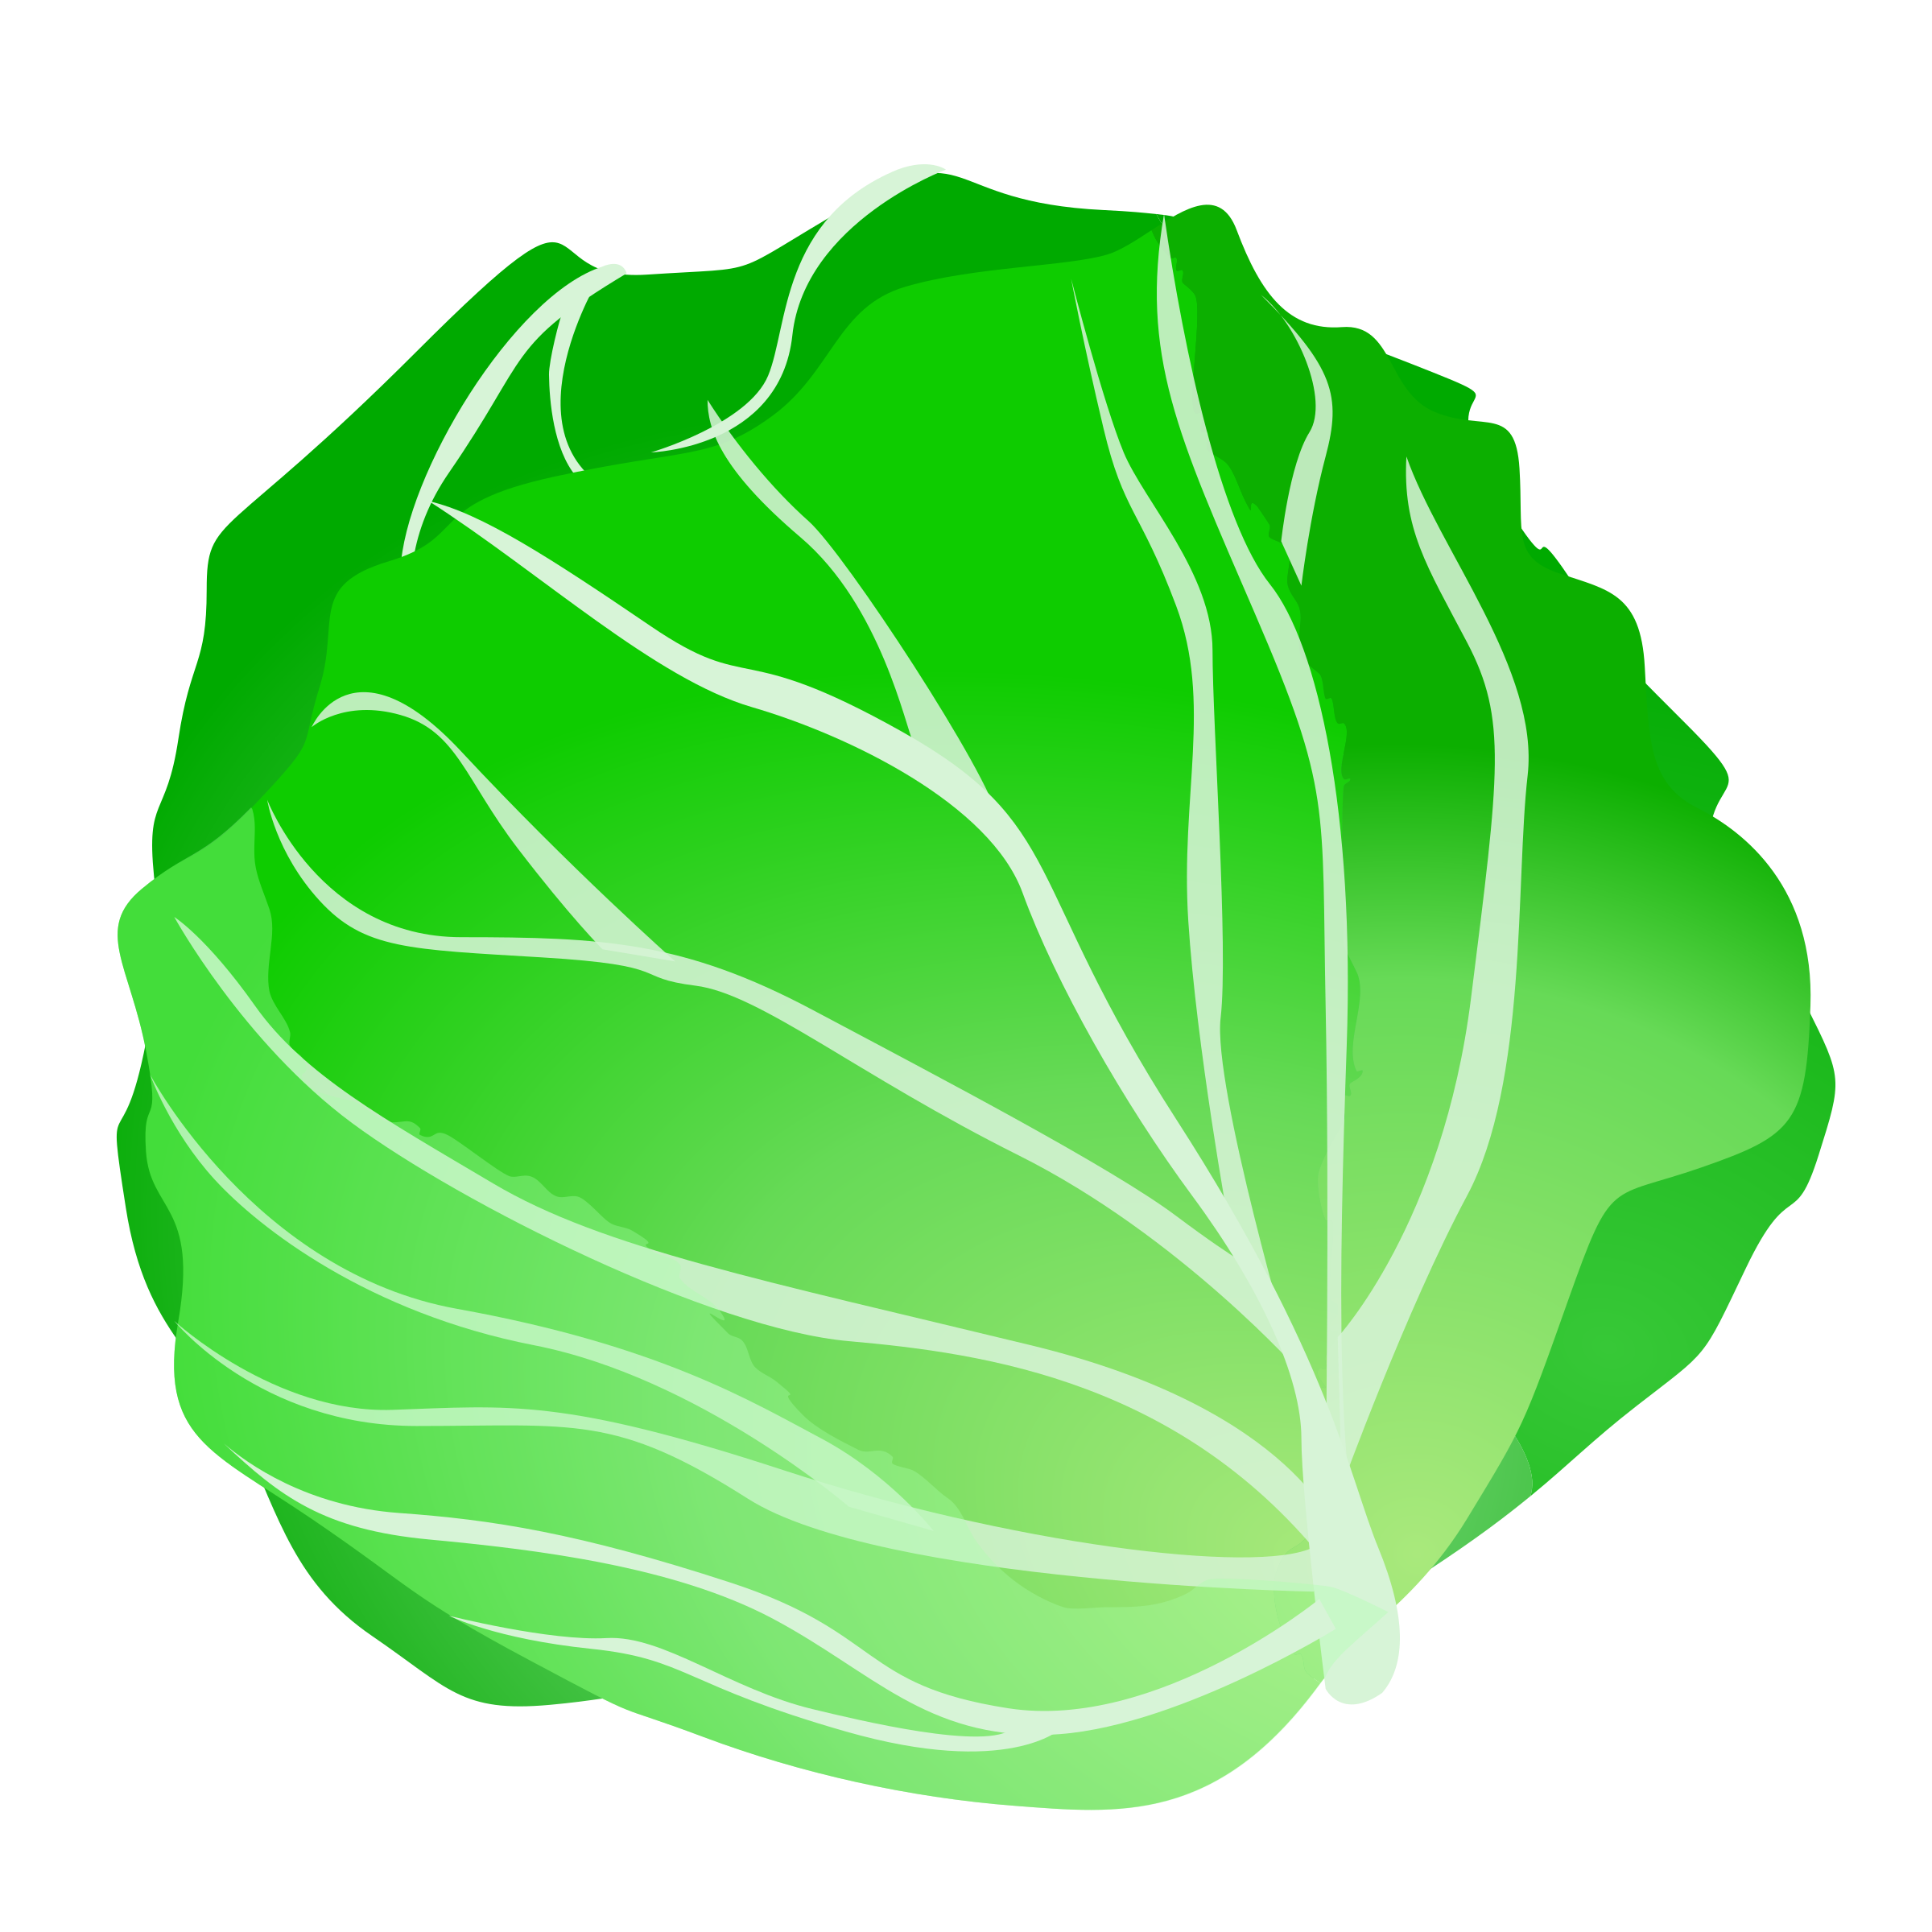 graphic free stock Vegetable lettuce fruit clip. Cabbage clipart letus.